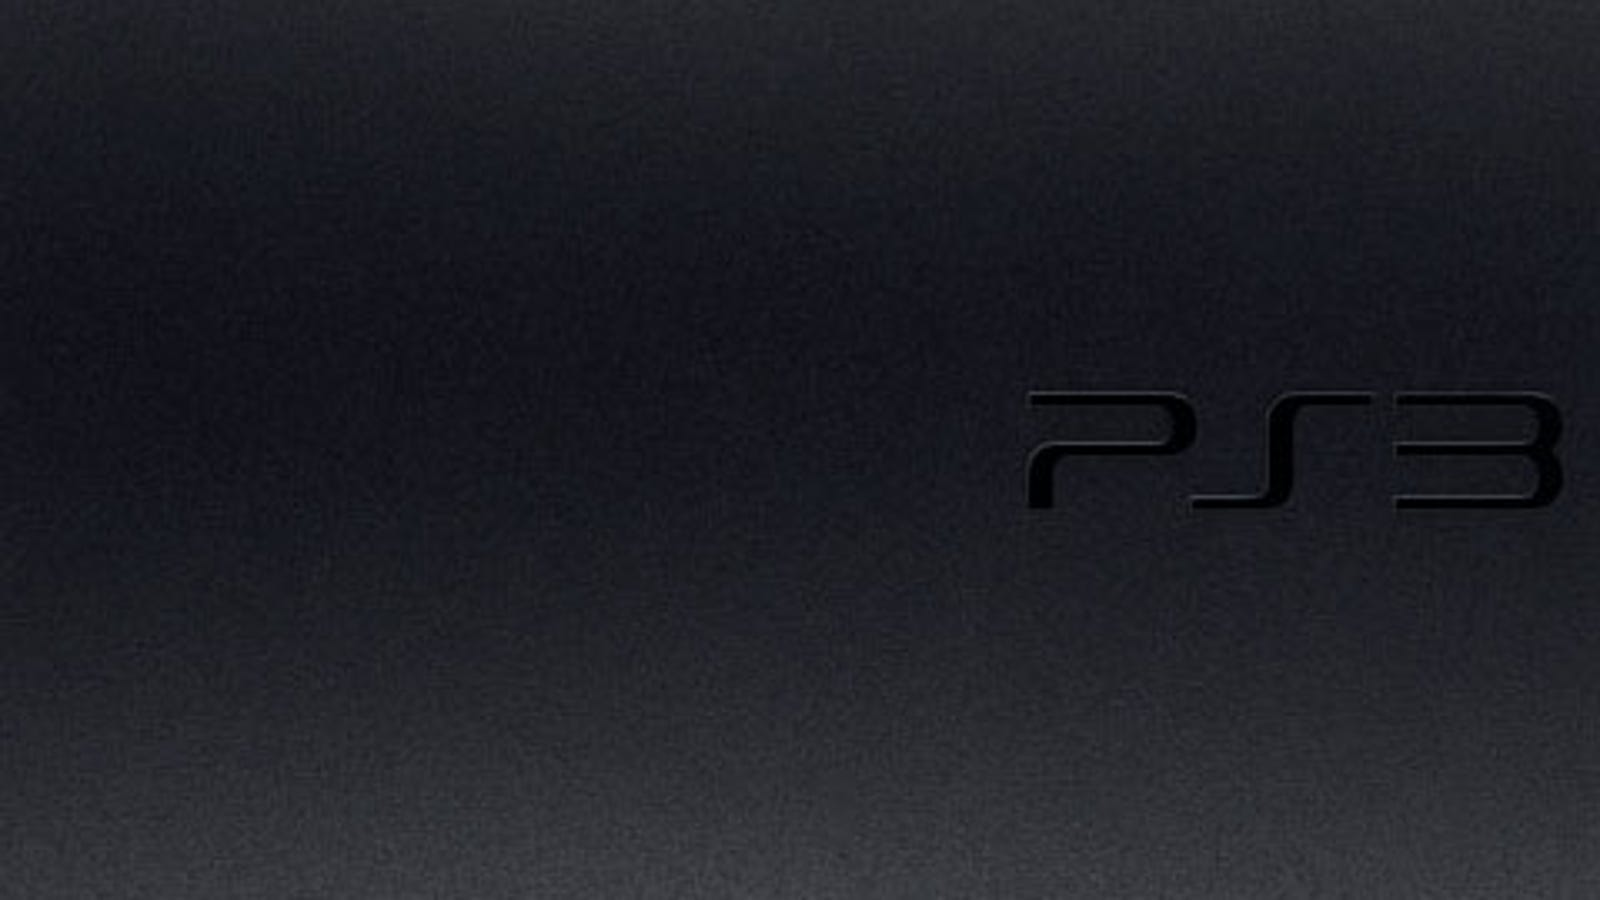 Sony Explain Why The PS3 Slim Has No Backwards Compatibility